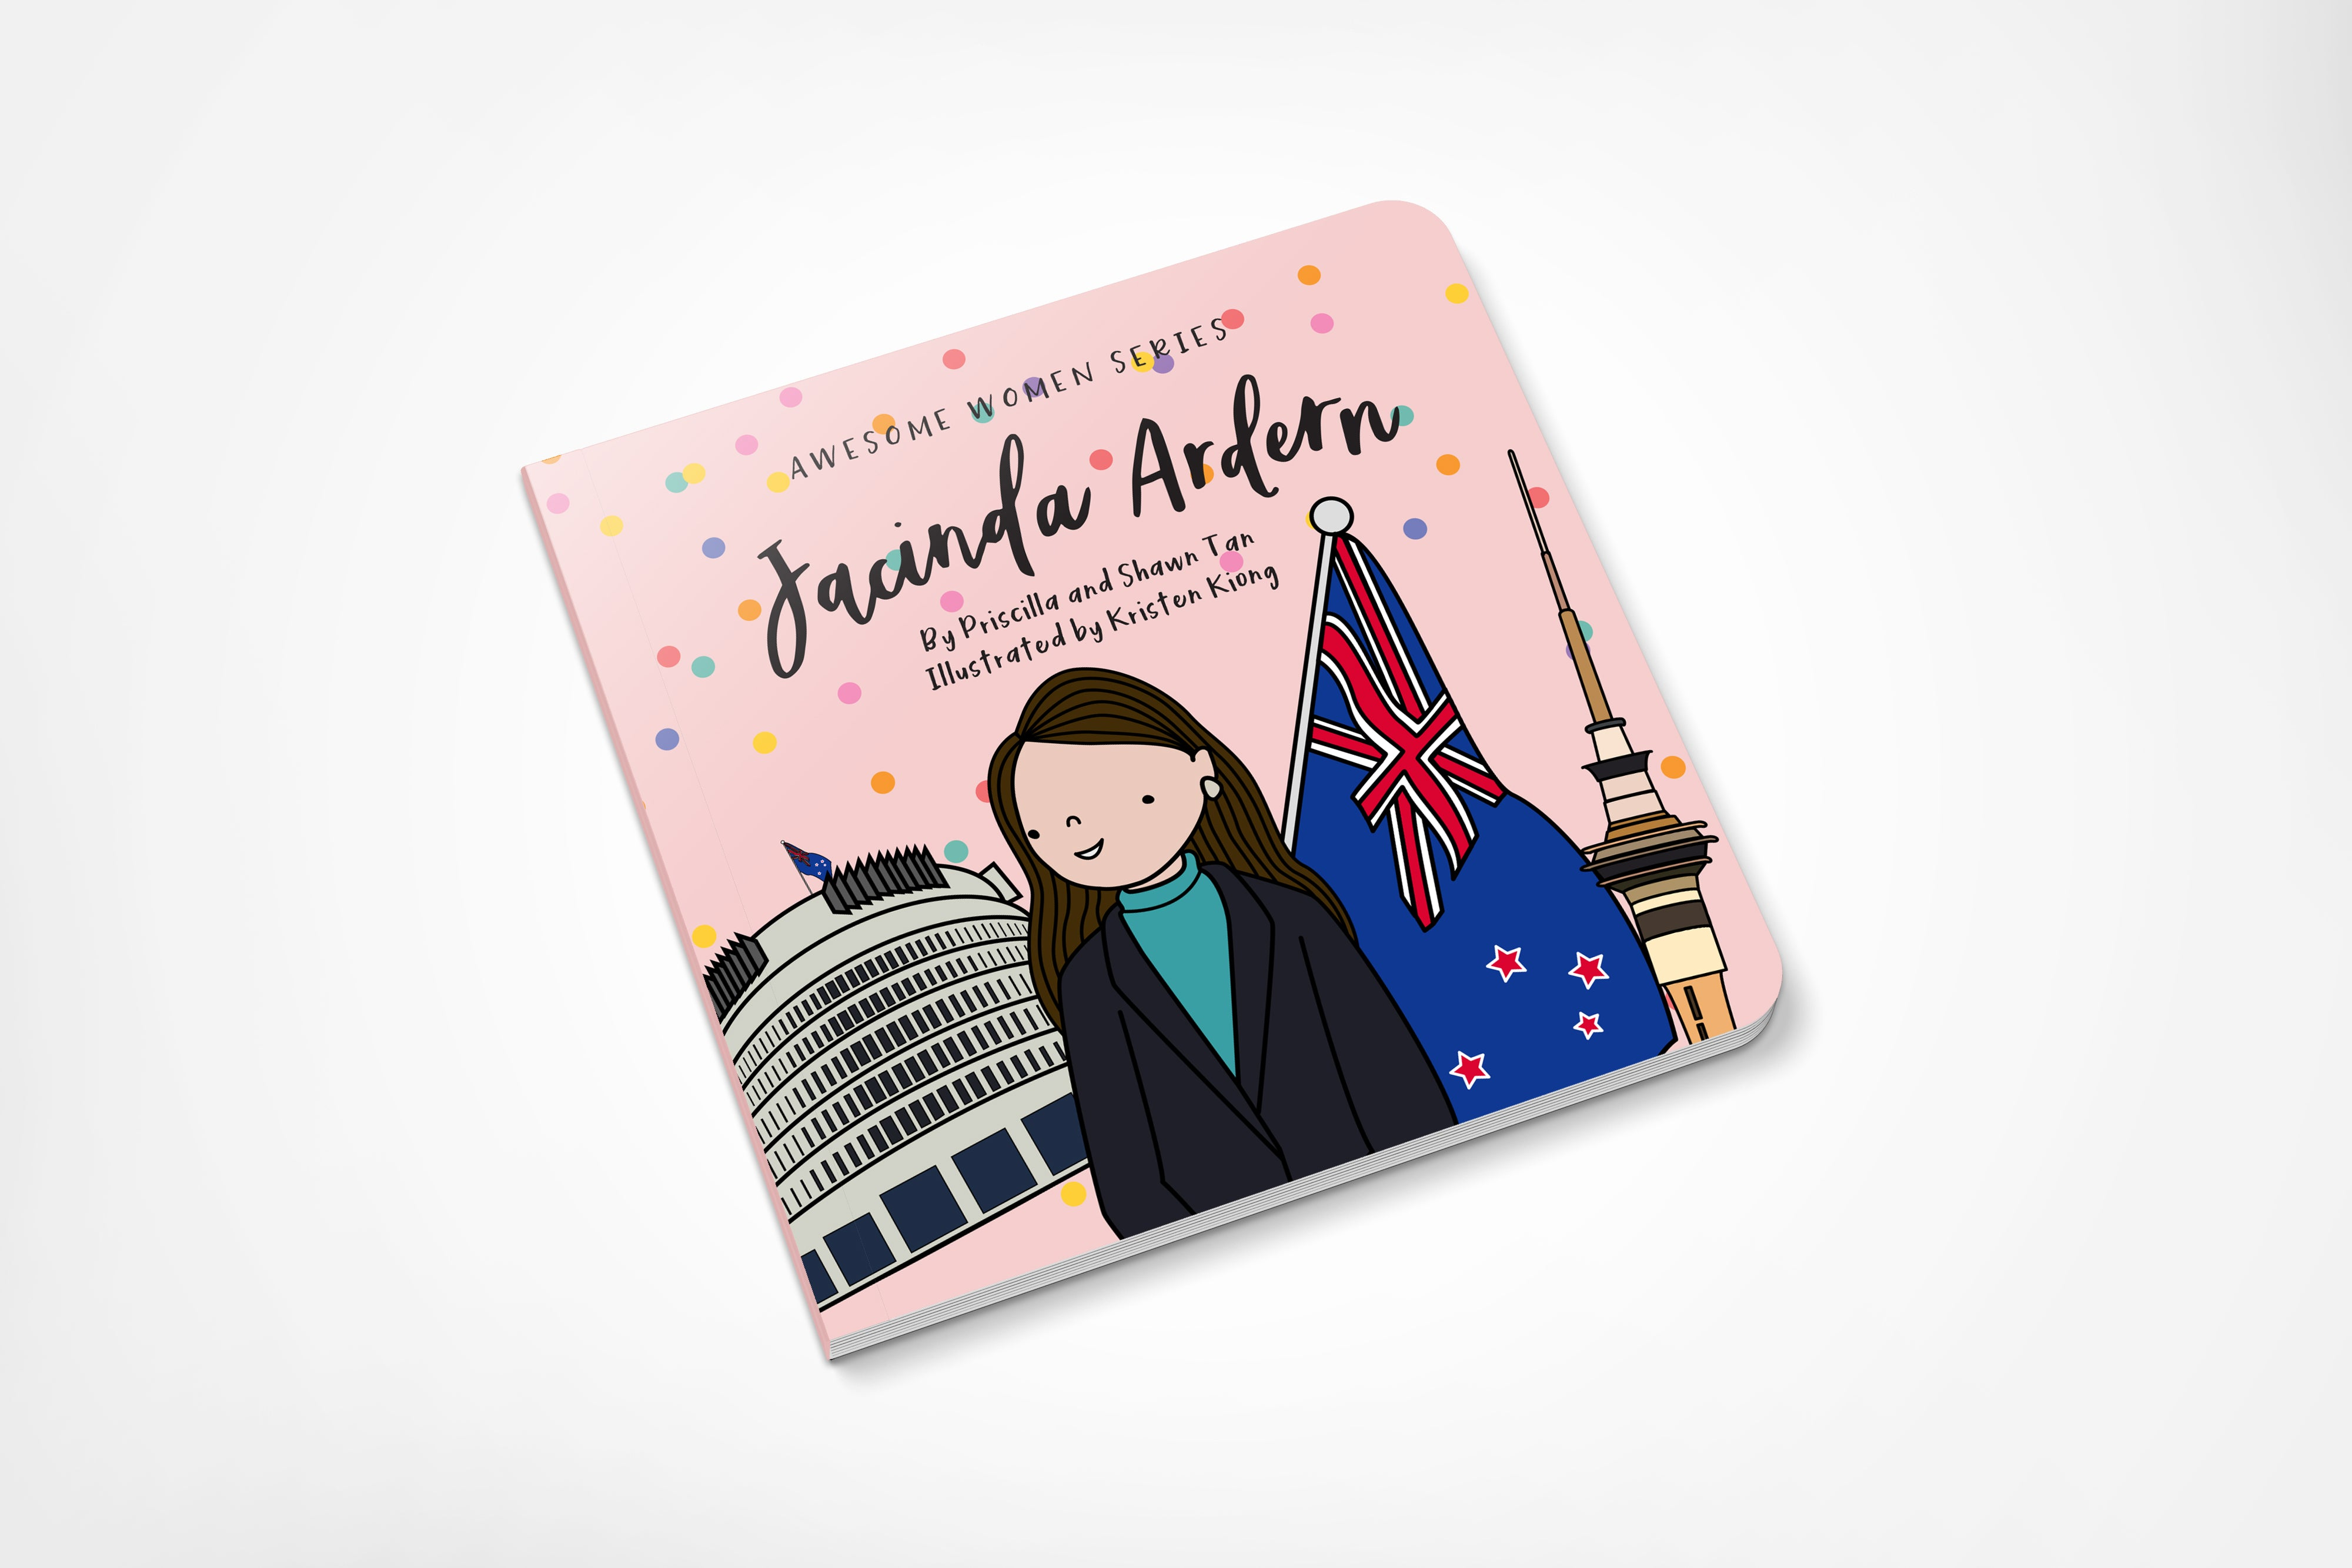 Leaders | Jacinda Ardern